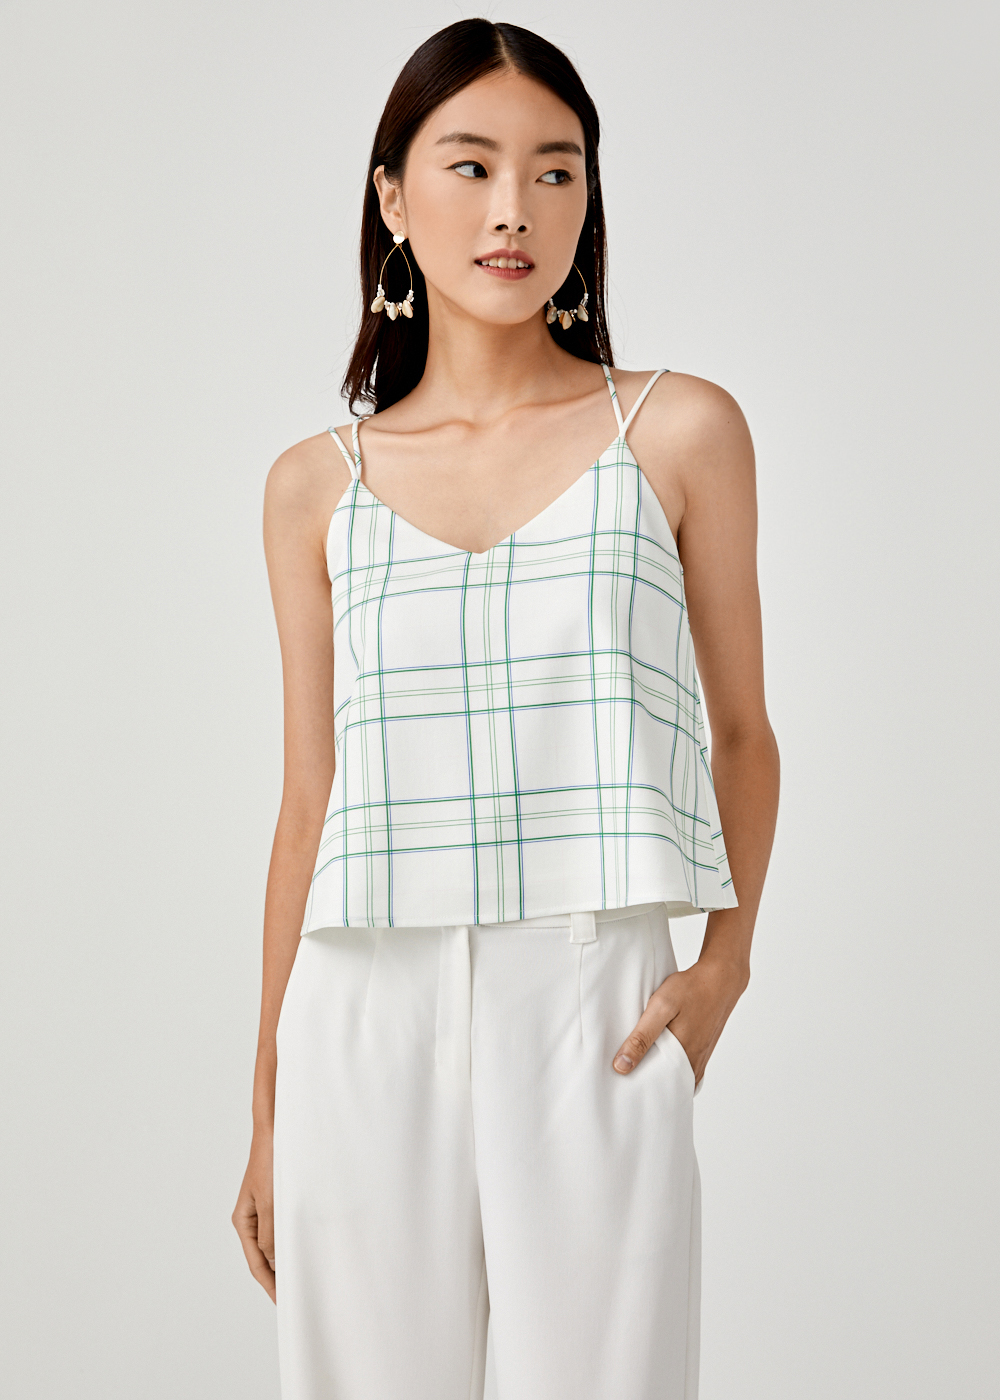 Dinis Cross Back Camisole in Vintage Plaid